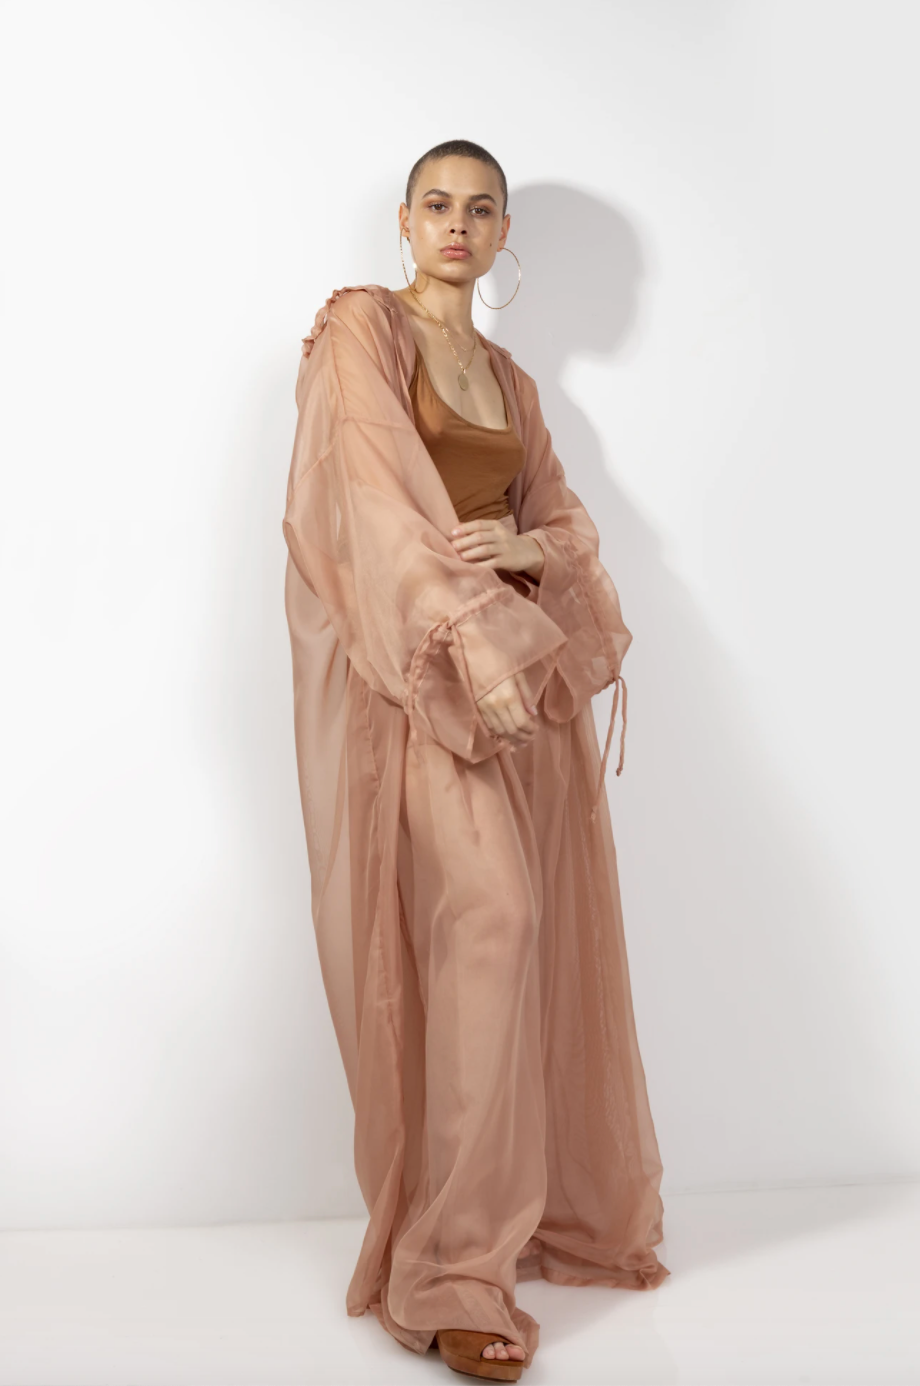 """<p><strong>Fe Noel</strong></p><p>fenoel.com</p><p><strong>$248.00</strong></p><p><a href=""""https://fenoel.com/collections/shop-all/products/a-lucid-blush-trench-hoody-lucid-blush-hoody-robe?variant=9225752444972"""" rel=""""nofollow noopener"""" target=""""_blank"""" data-ylk=""""slk:Shop Now"""" class=""""link rapid-noclick-resp"""">Shop Now</a></p><p>Here's a glam way to upgrade your outerwear game.</p>"""